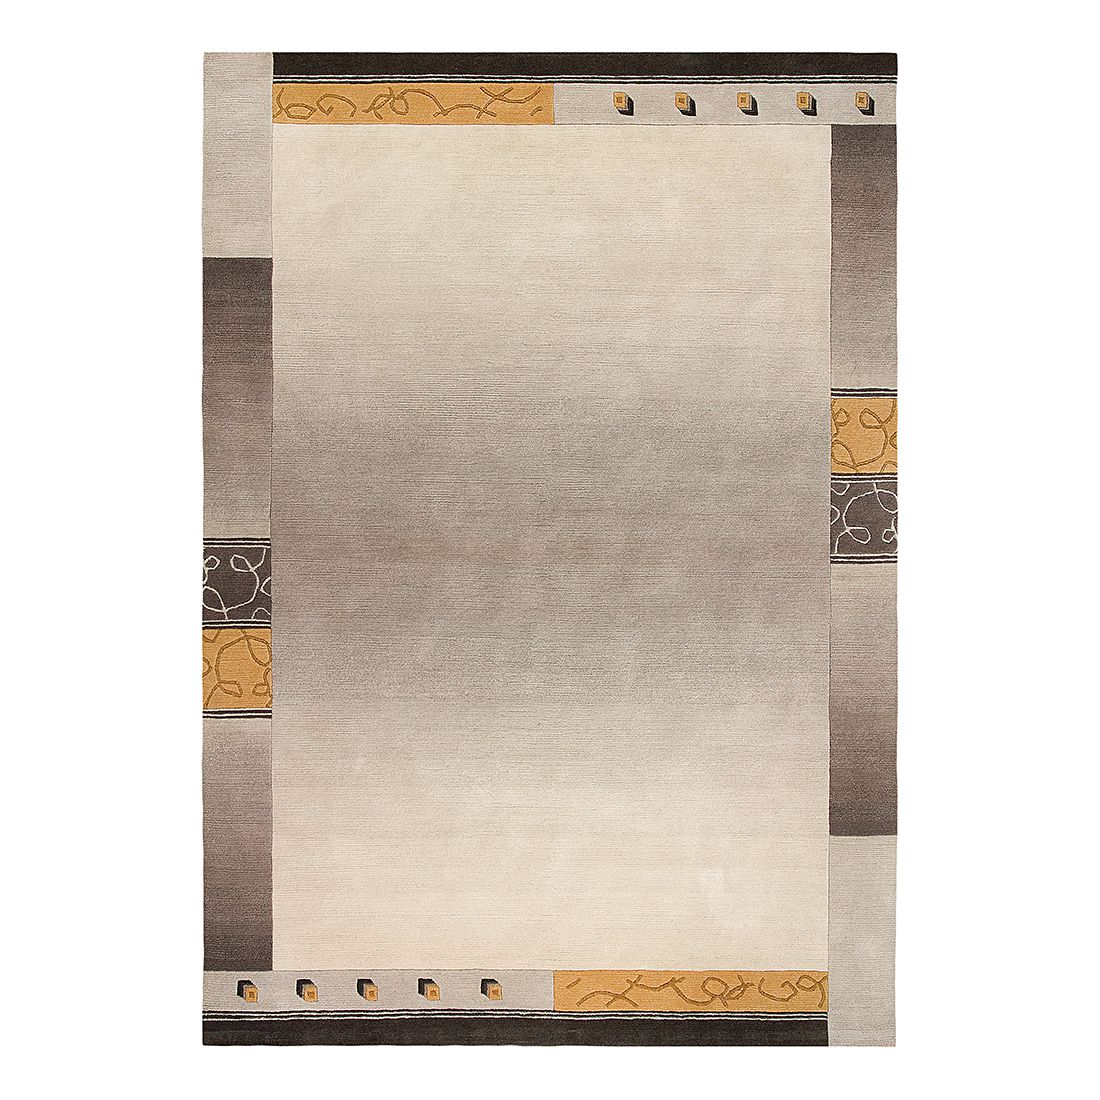 Teppich Super Q - Wolle/ Taupe - 170 cm x 240 cm, Luxor living